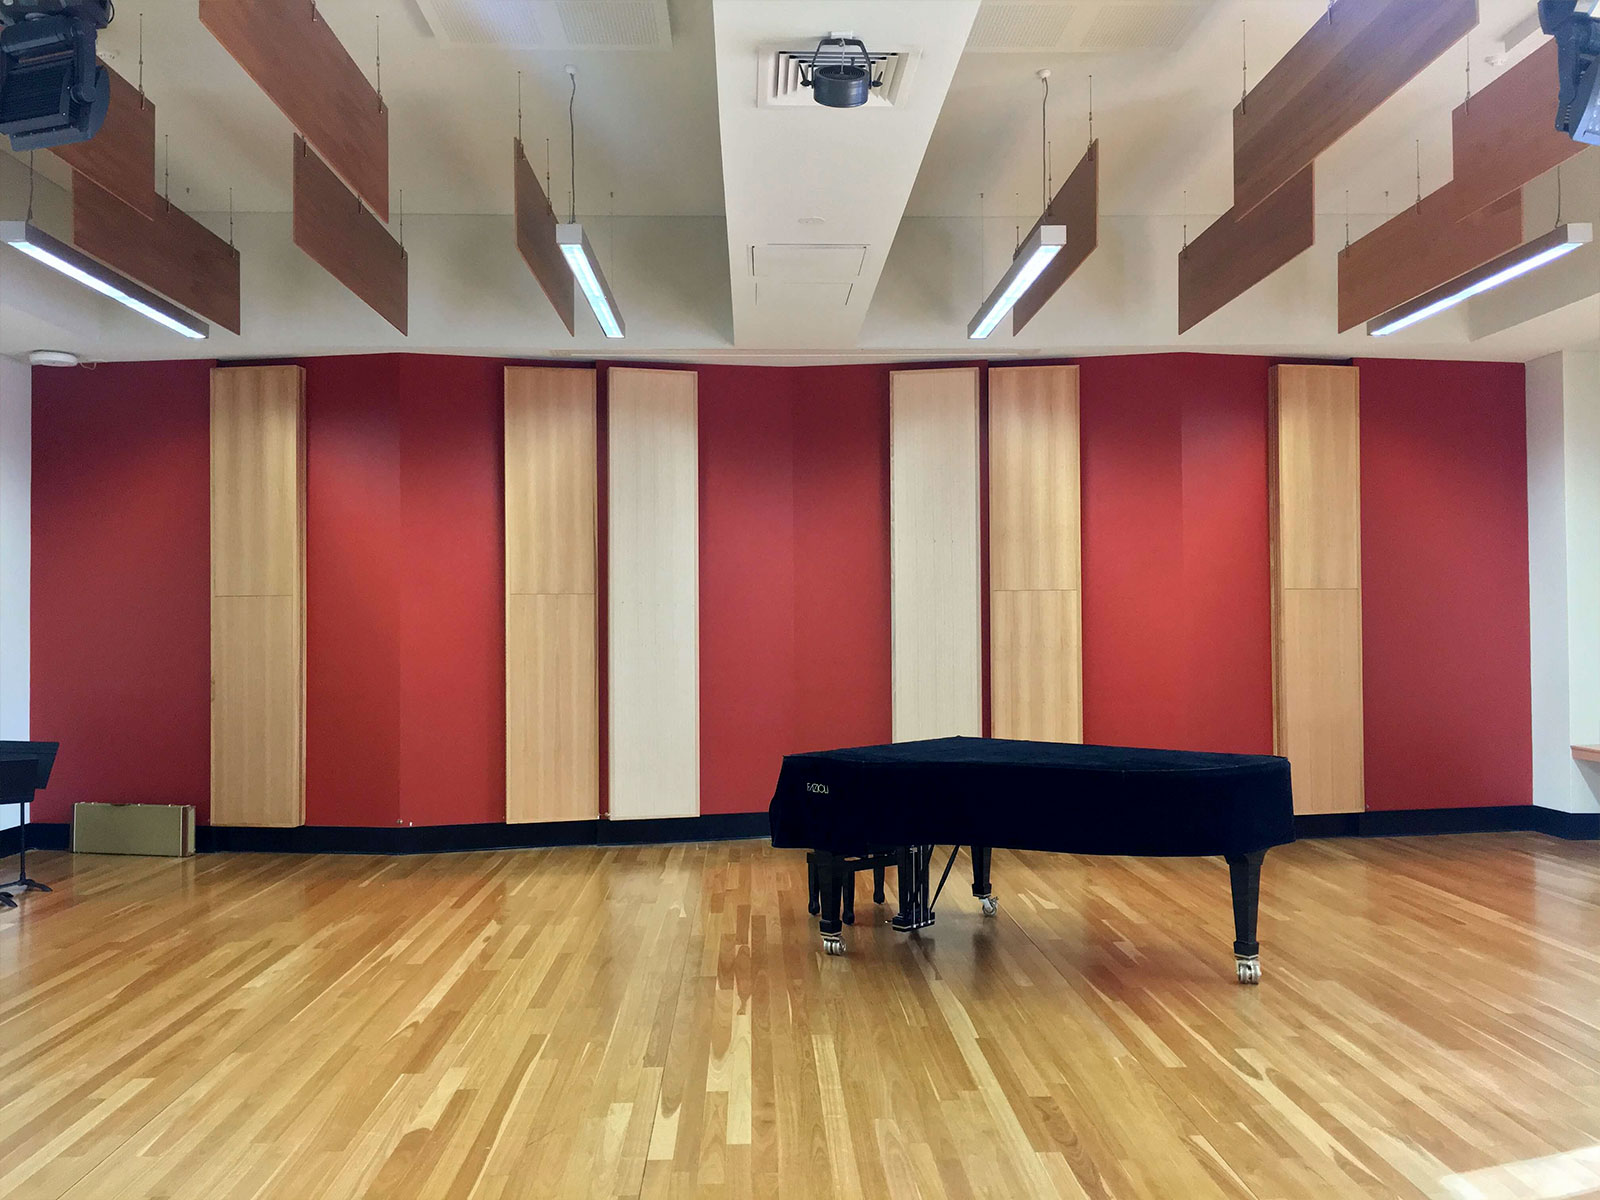 Soundproofed music room with piano